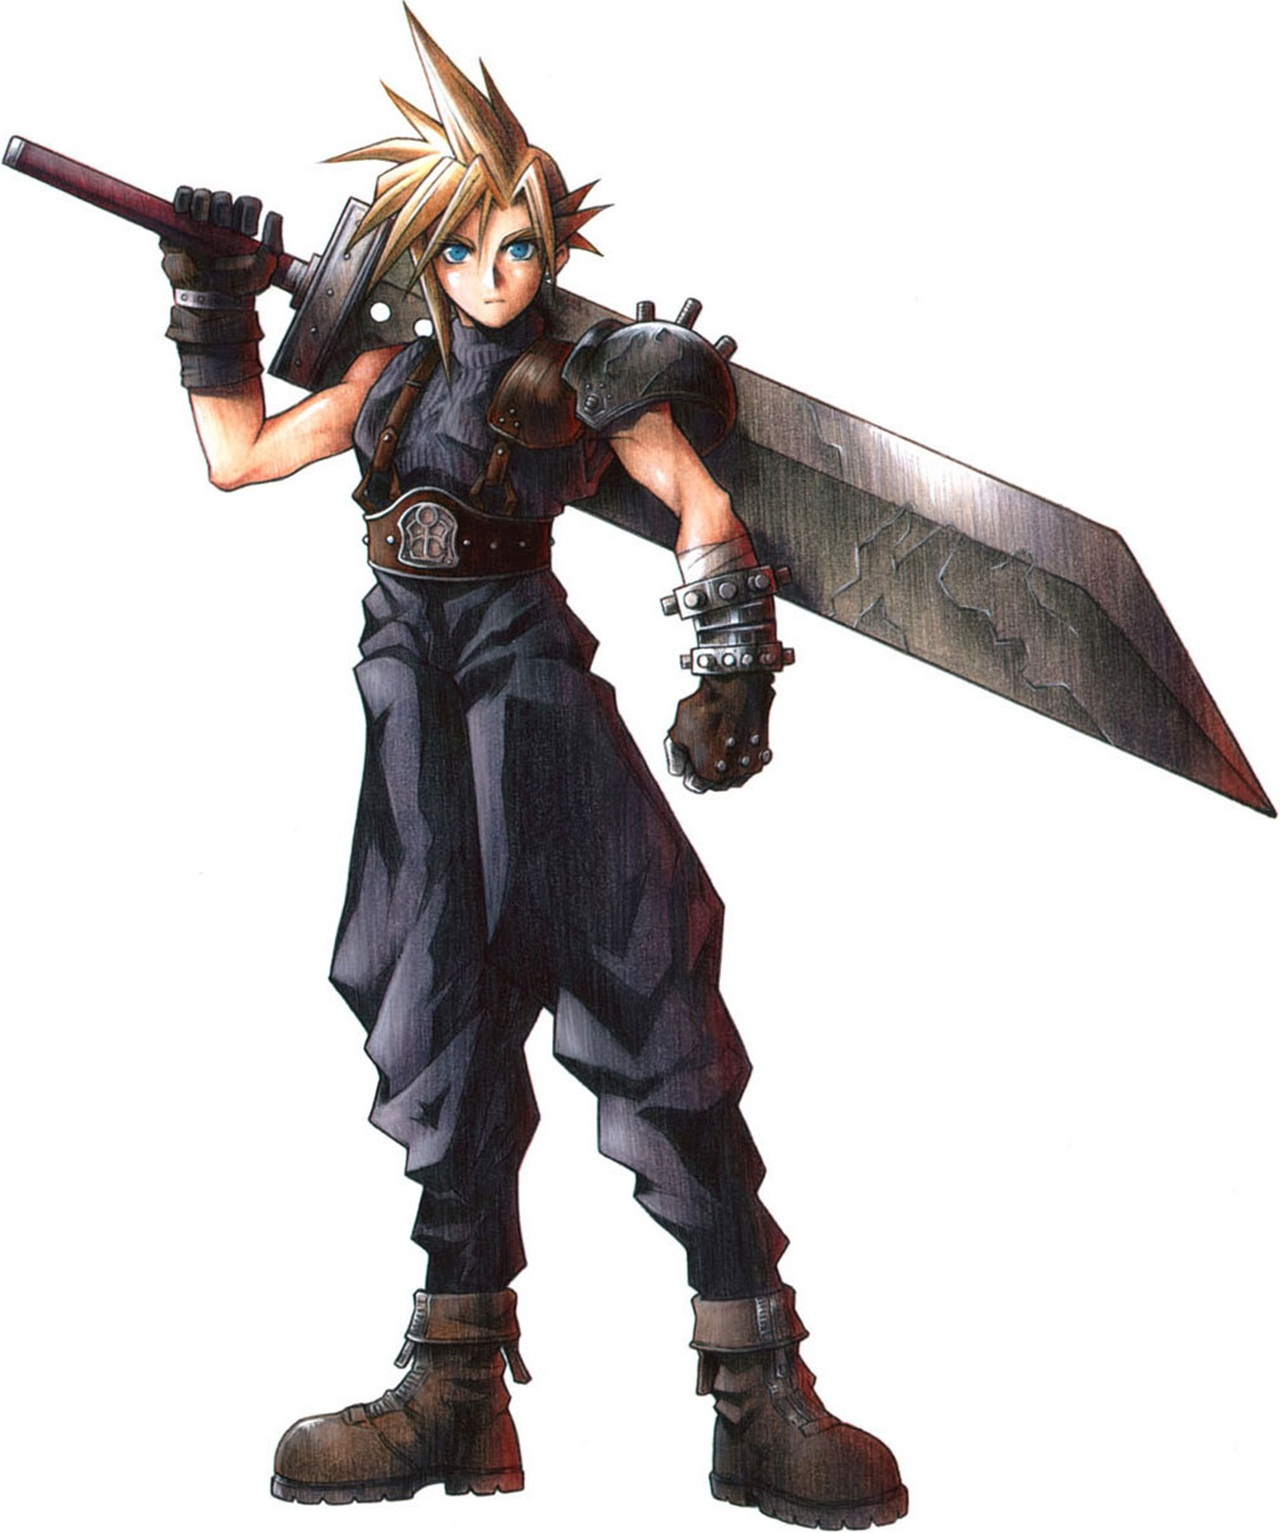 Most JRPG protagonists – Any JRPG